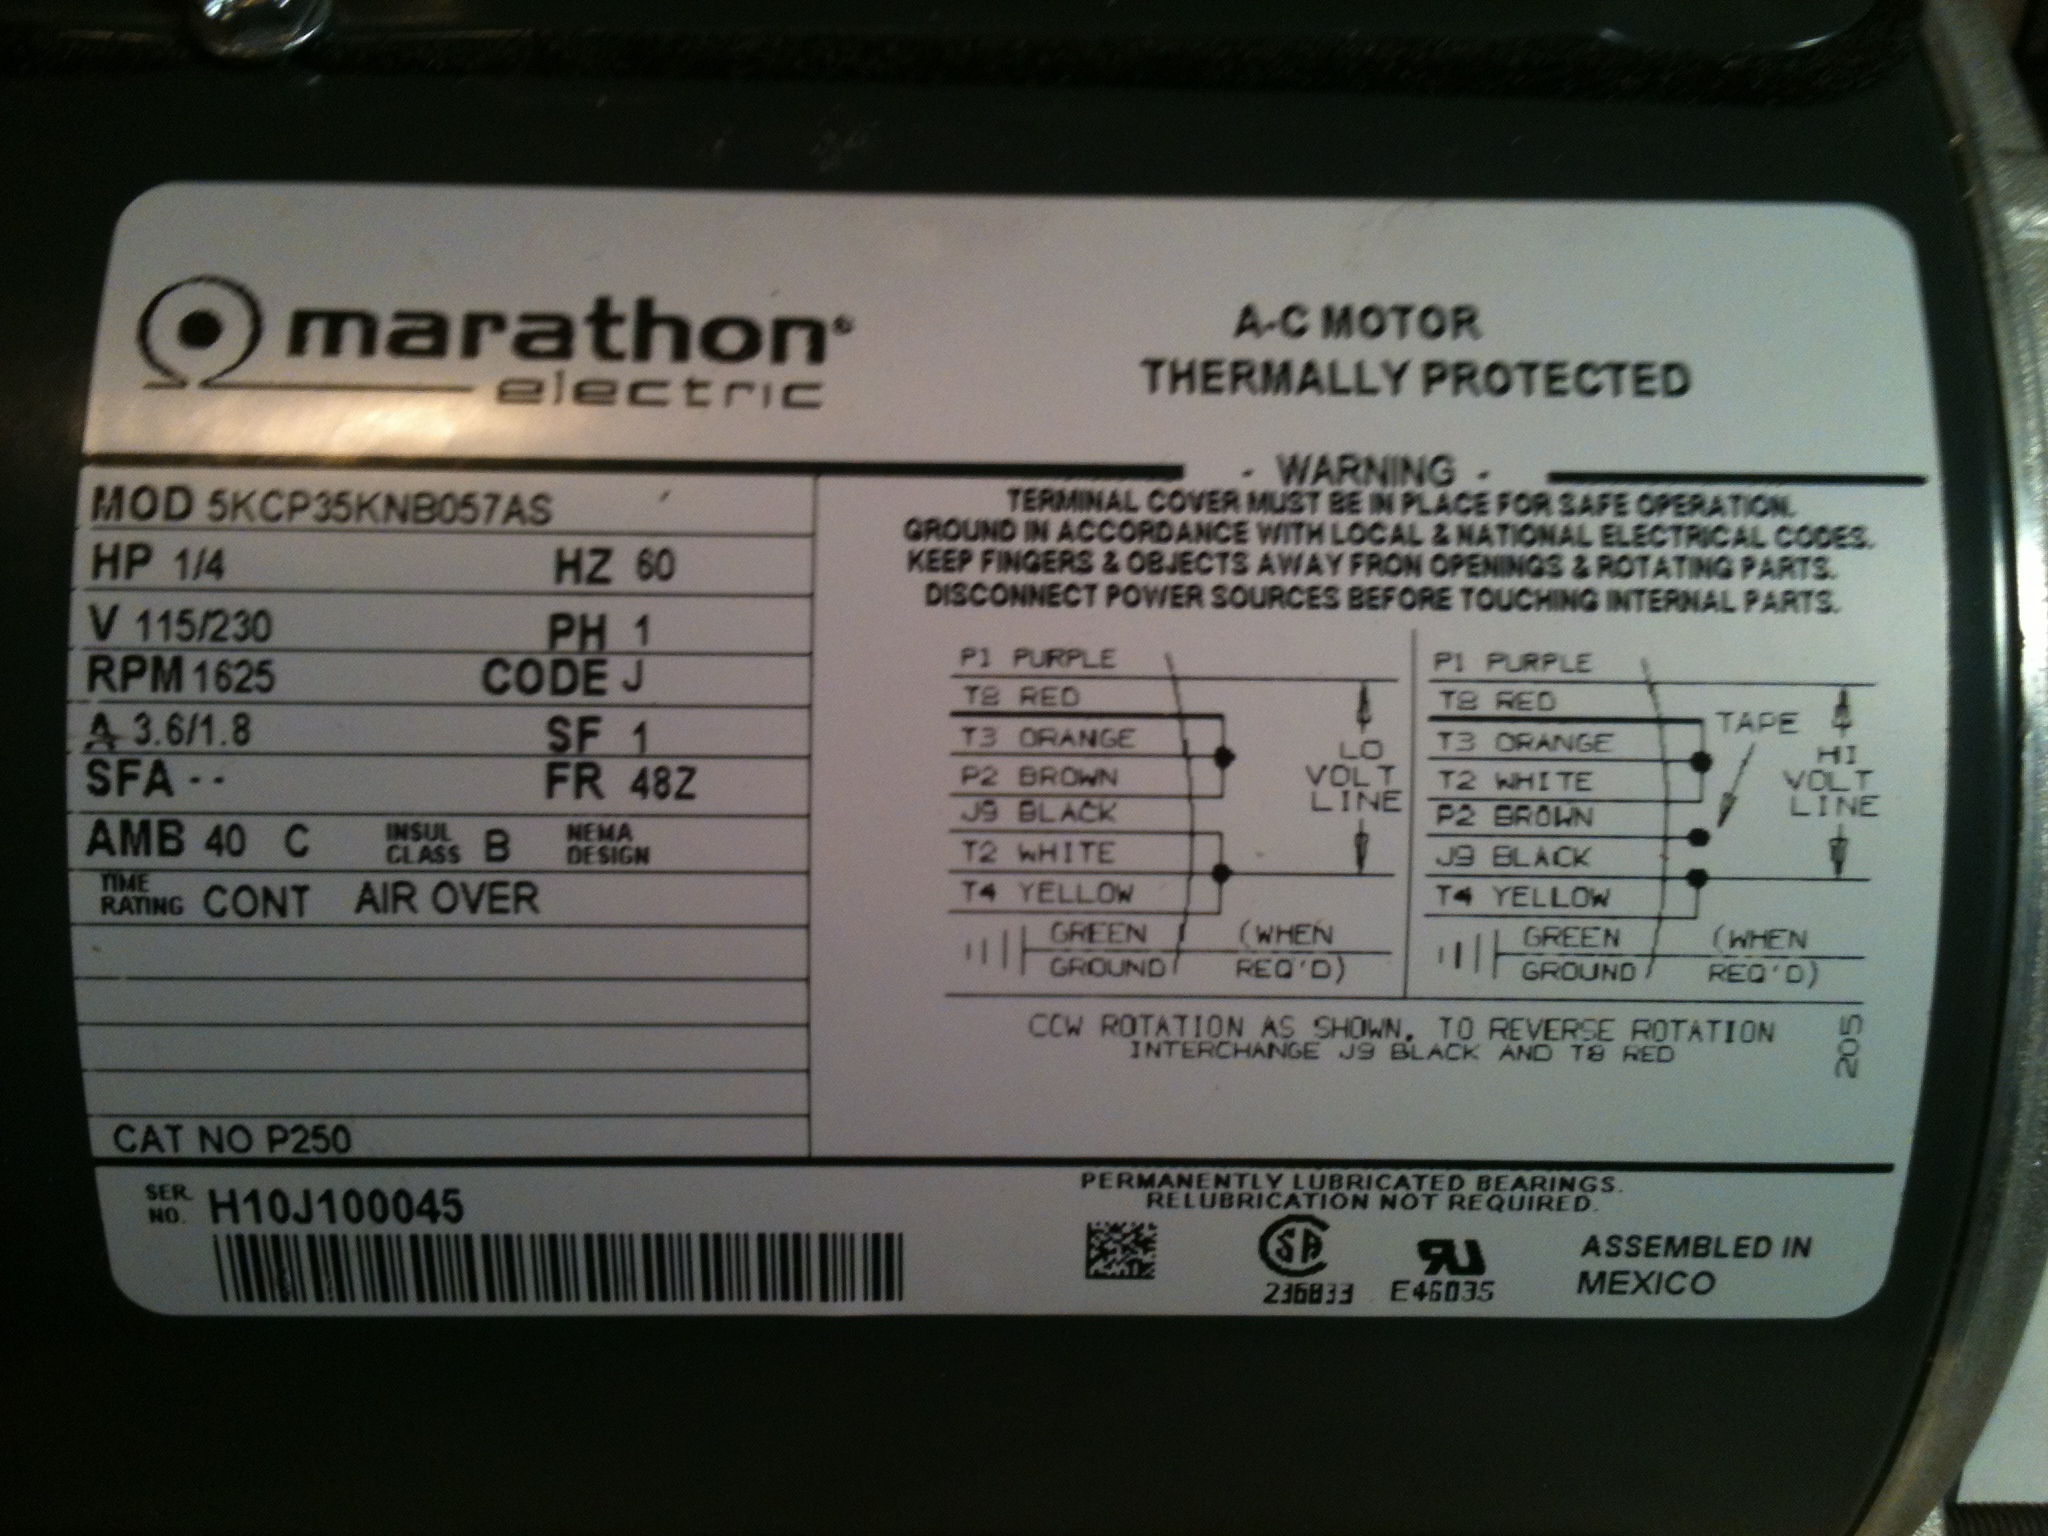 need help with marathon electric ac motor wiring Car Stereo Wiring Diagram motor label